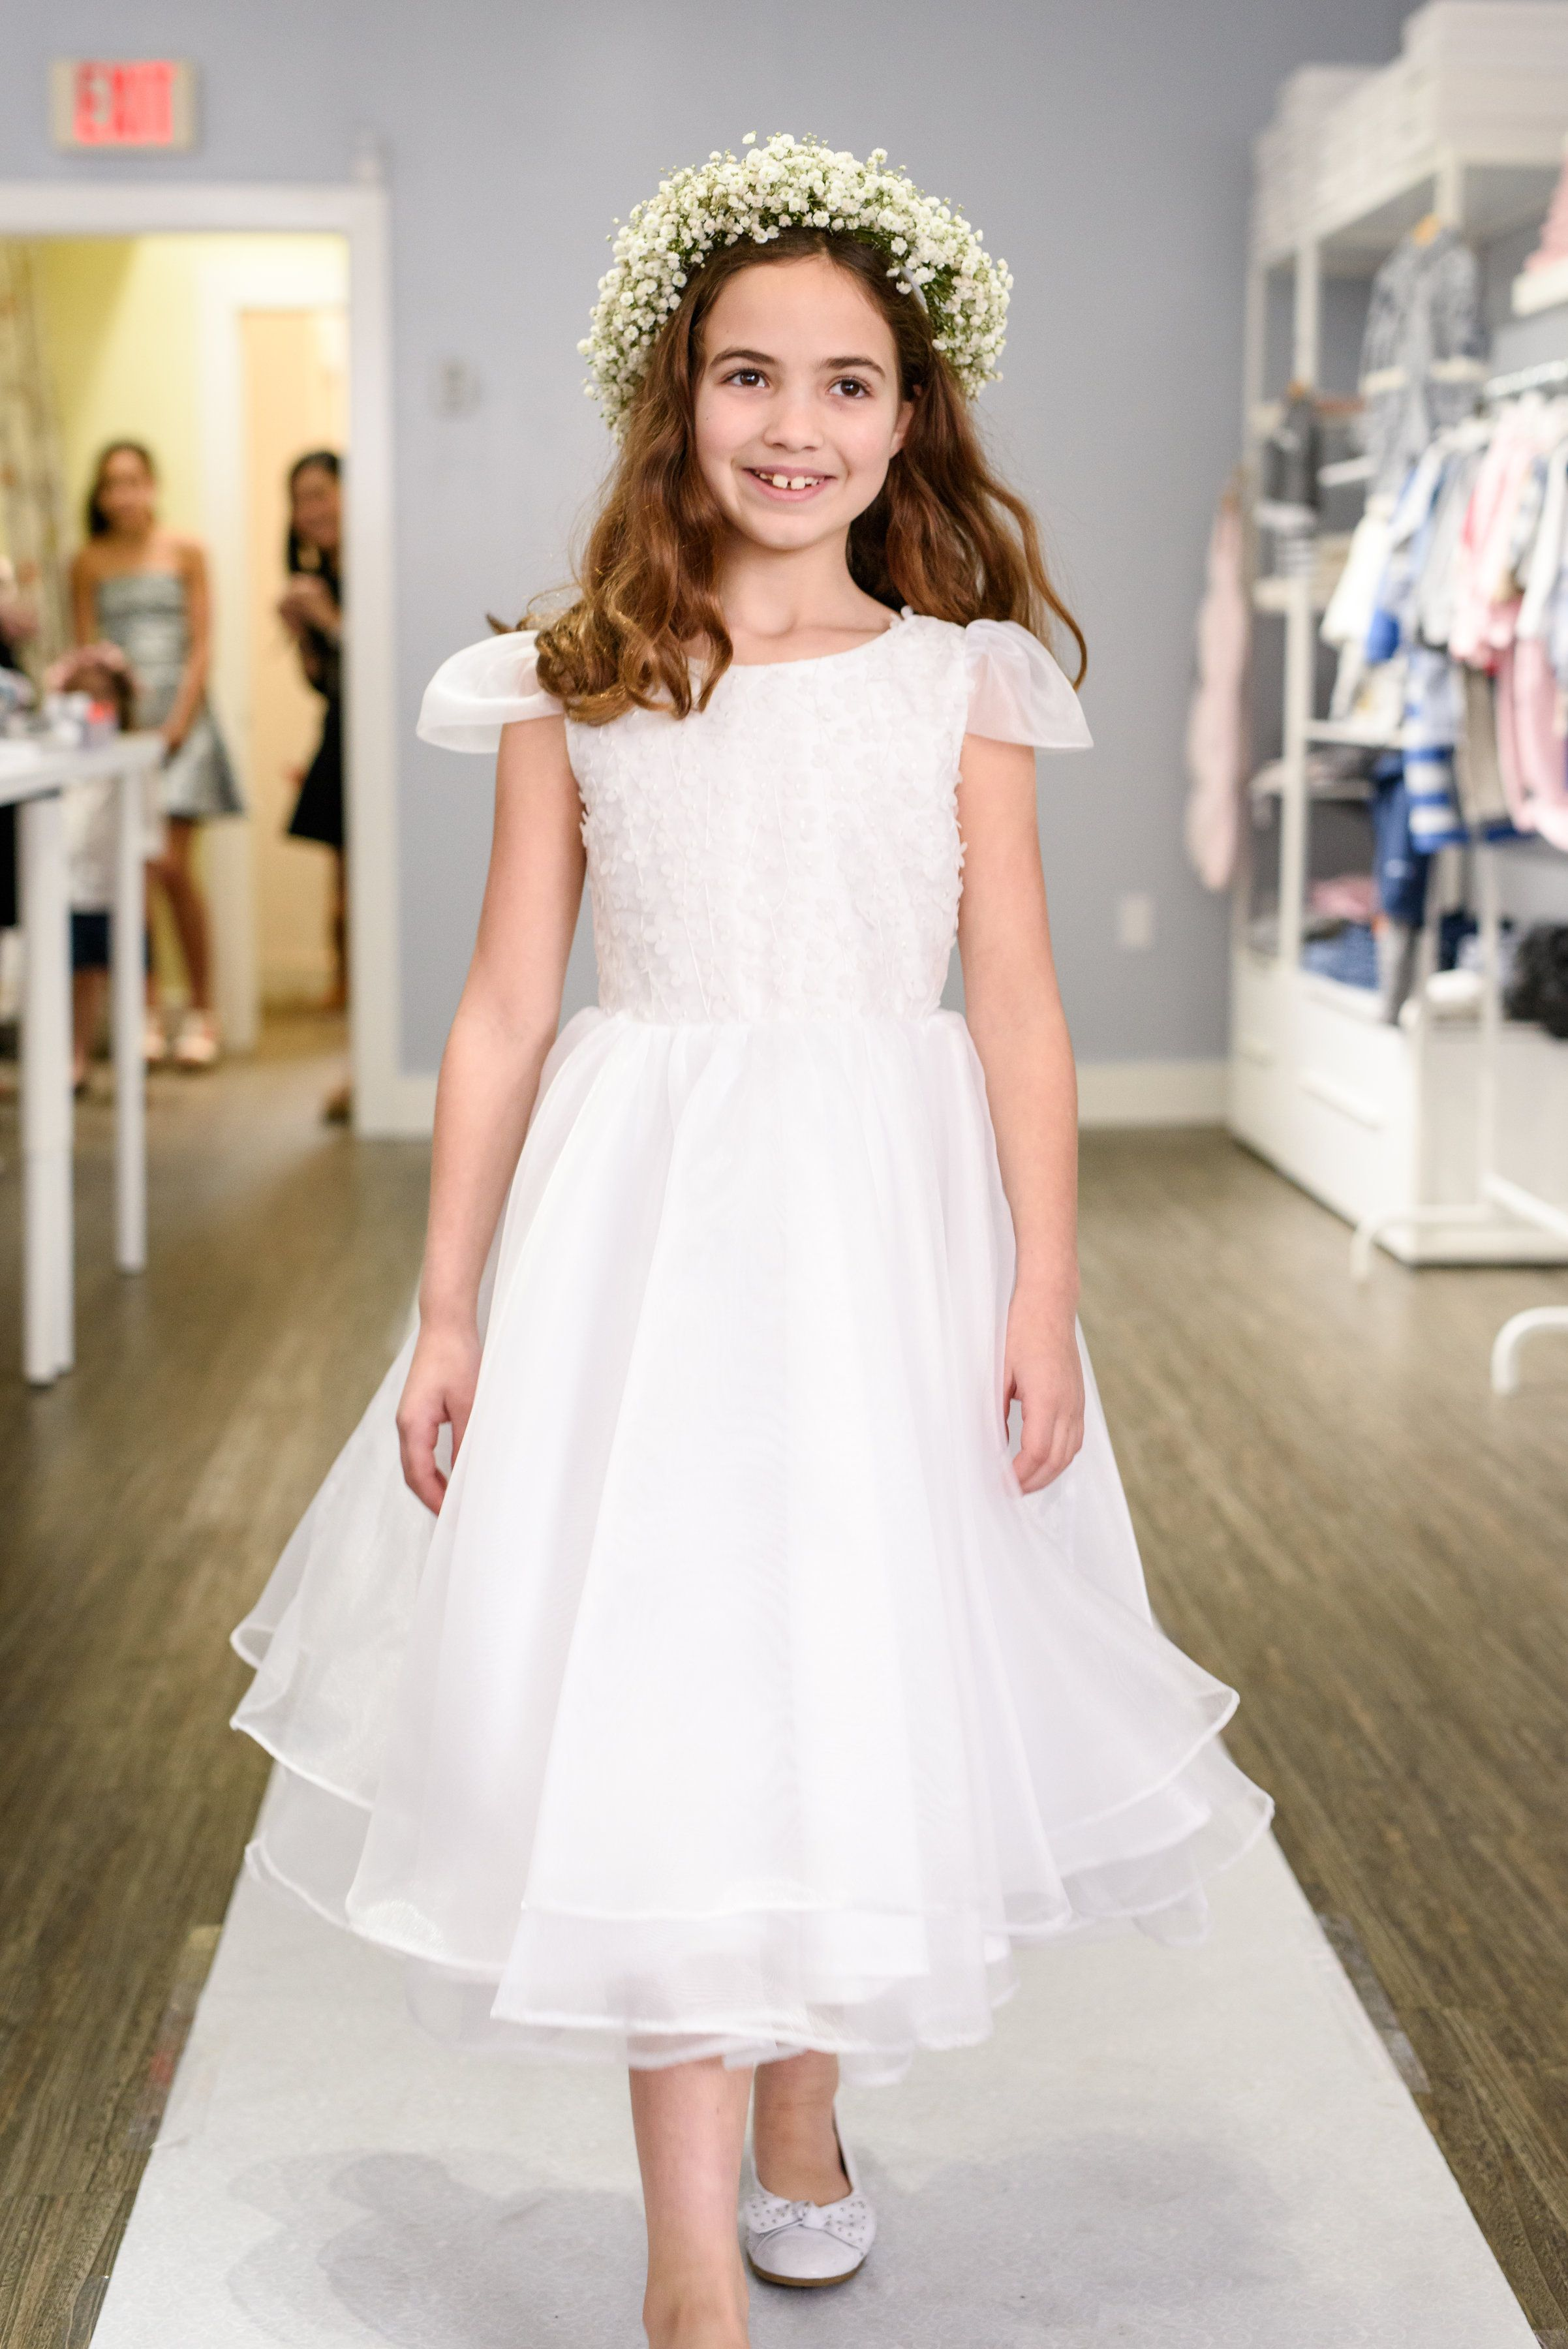 0e4c75fb088 Emily looks radiant in this First Communion dress by Stella M Lia! How  Beautiful! The dress is a limited edition that is exclusively available at  Ella ...